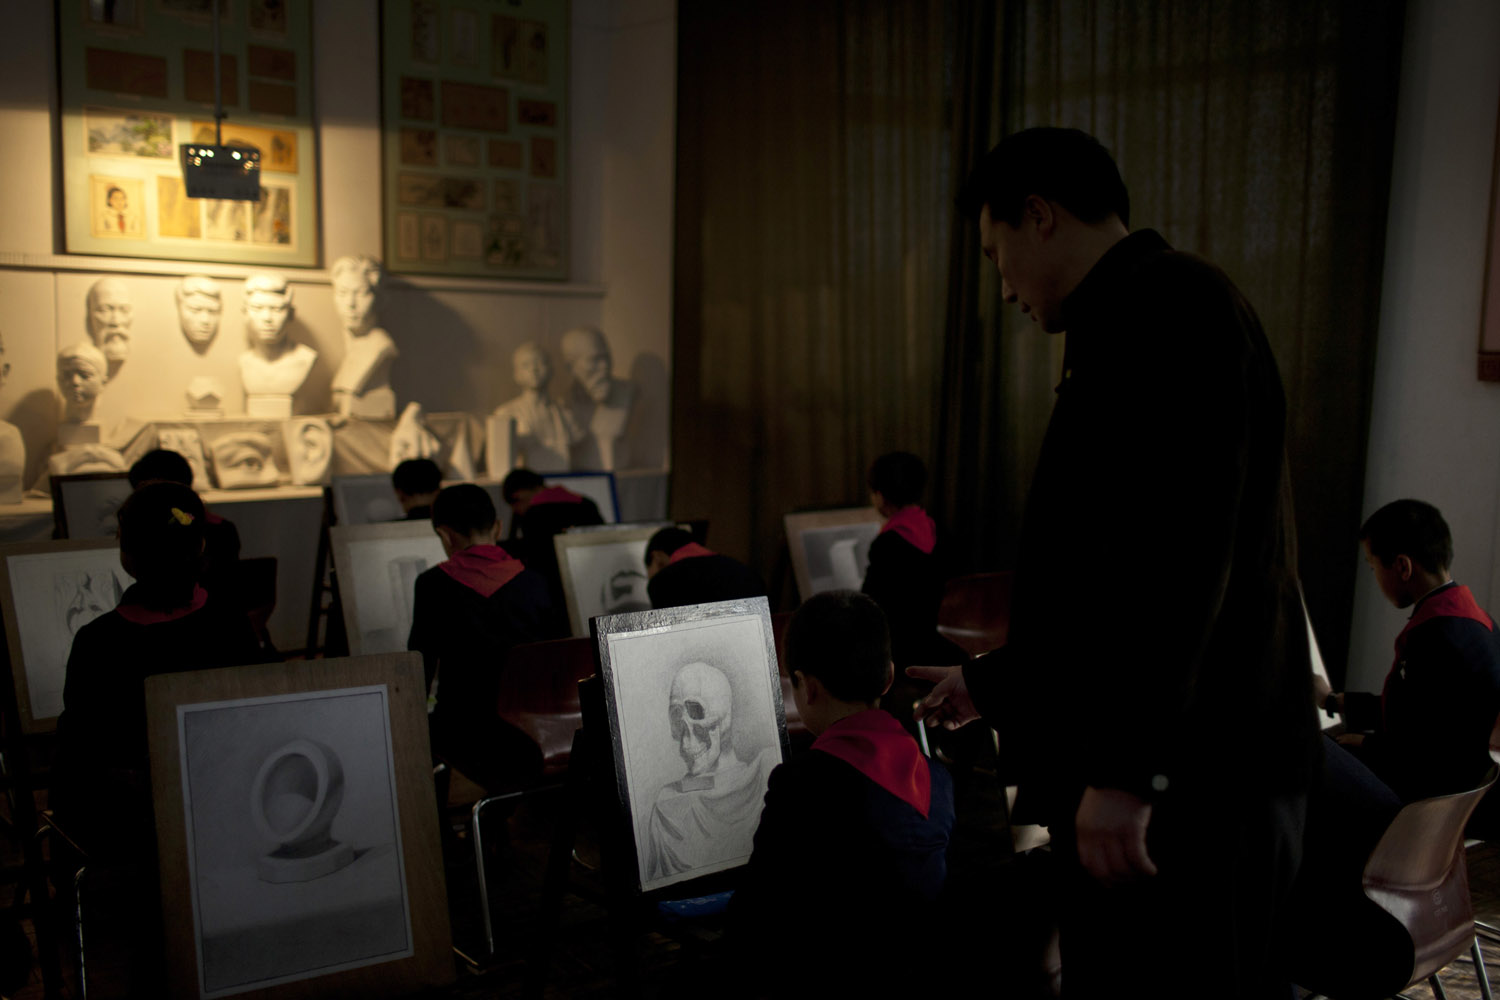 April 18, 2013. A teacher instructs during a drawing class at Mangyongdae Children's Palace in Pyongyang, North Korea.